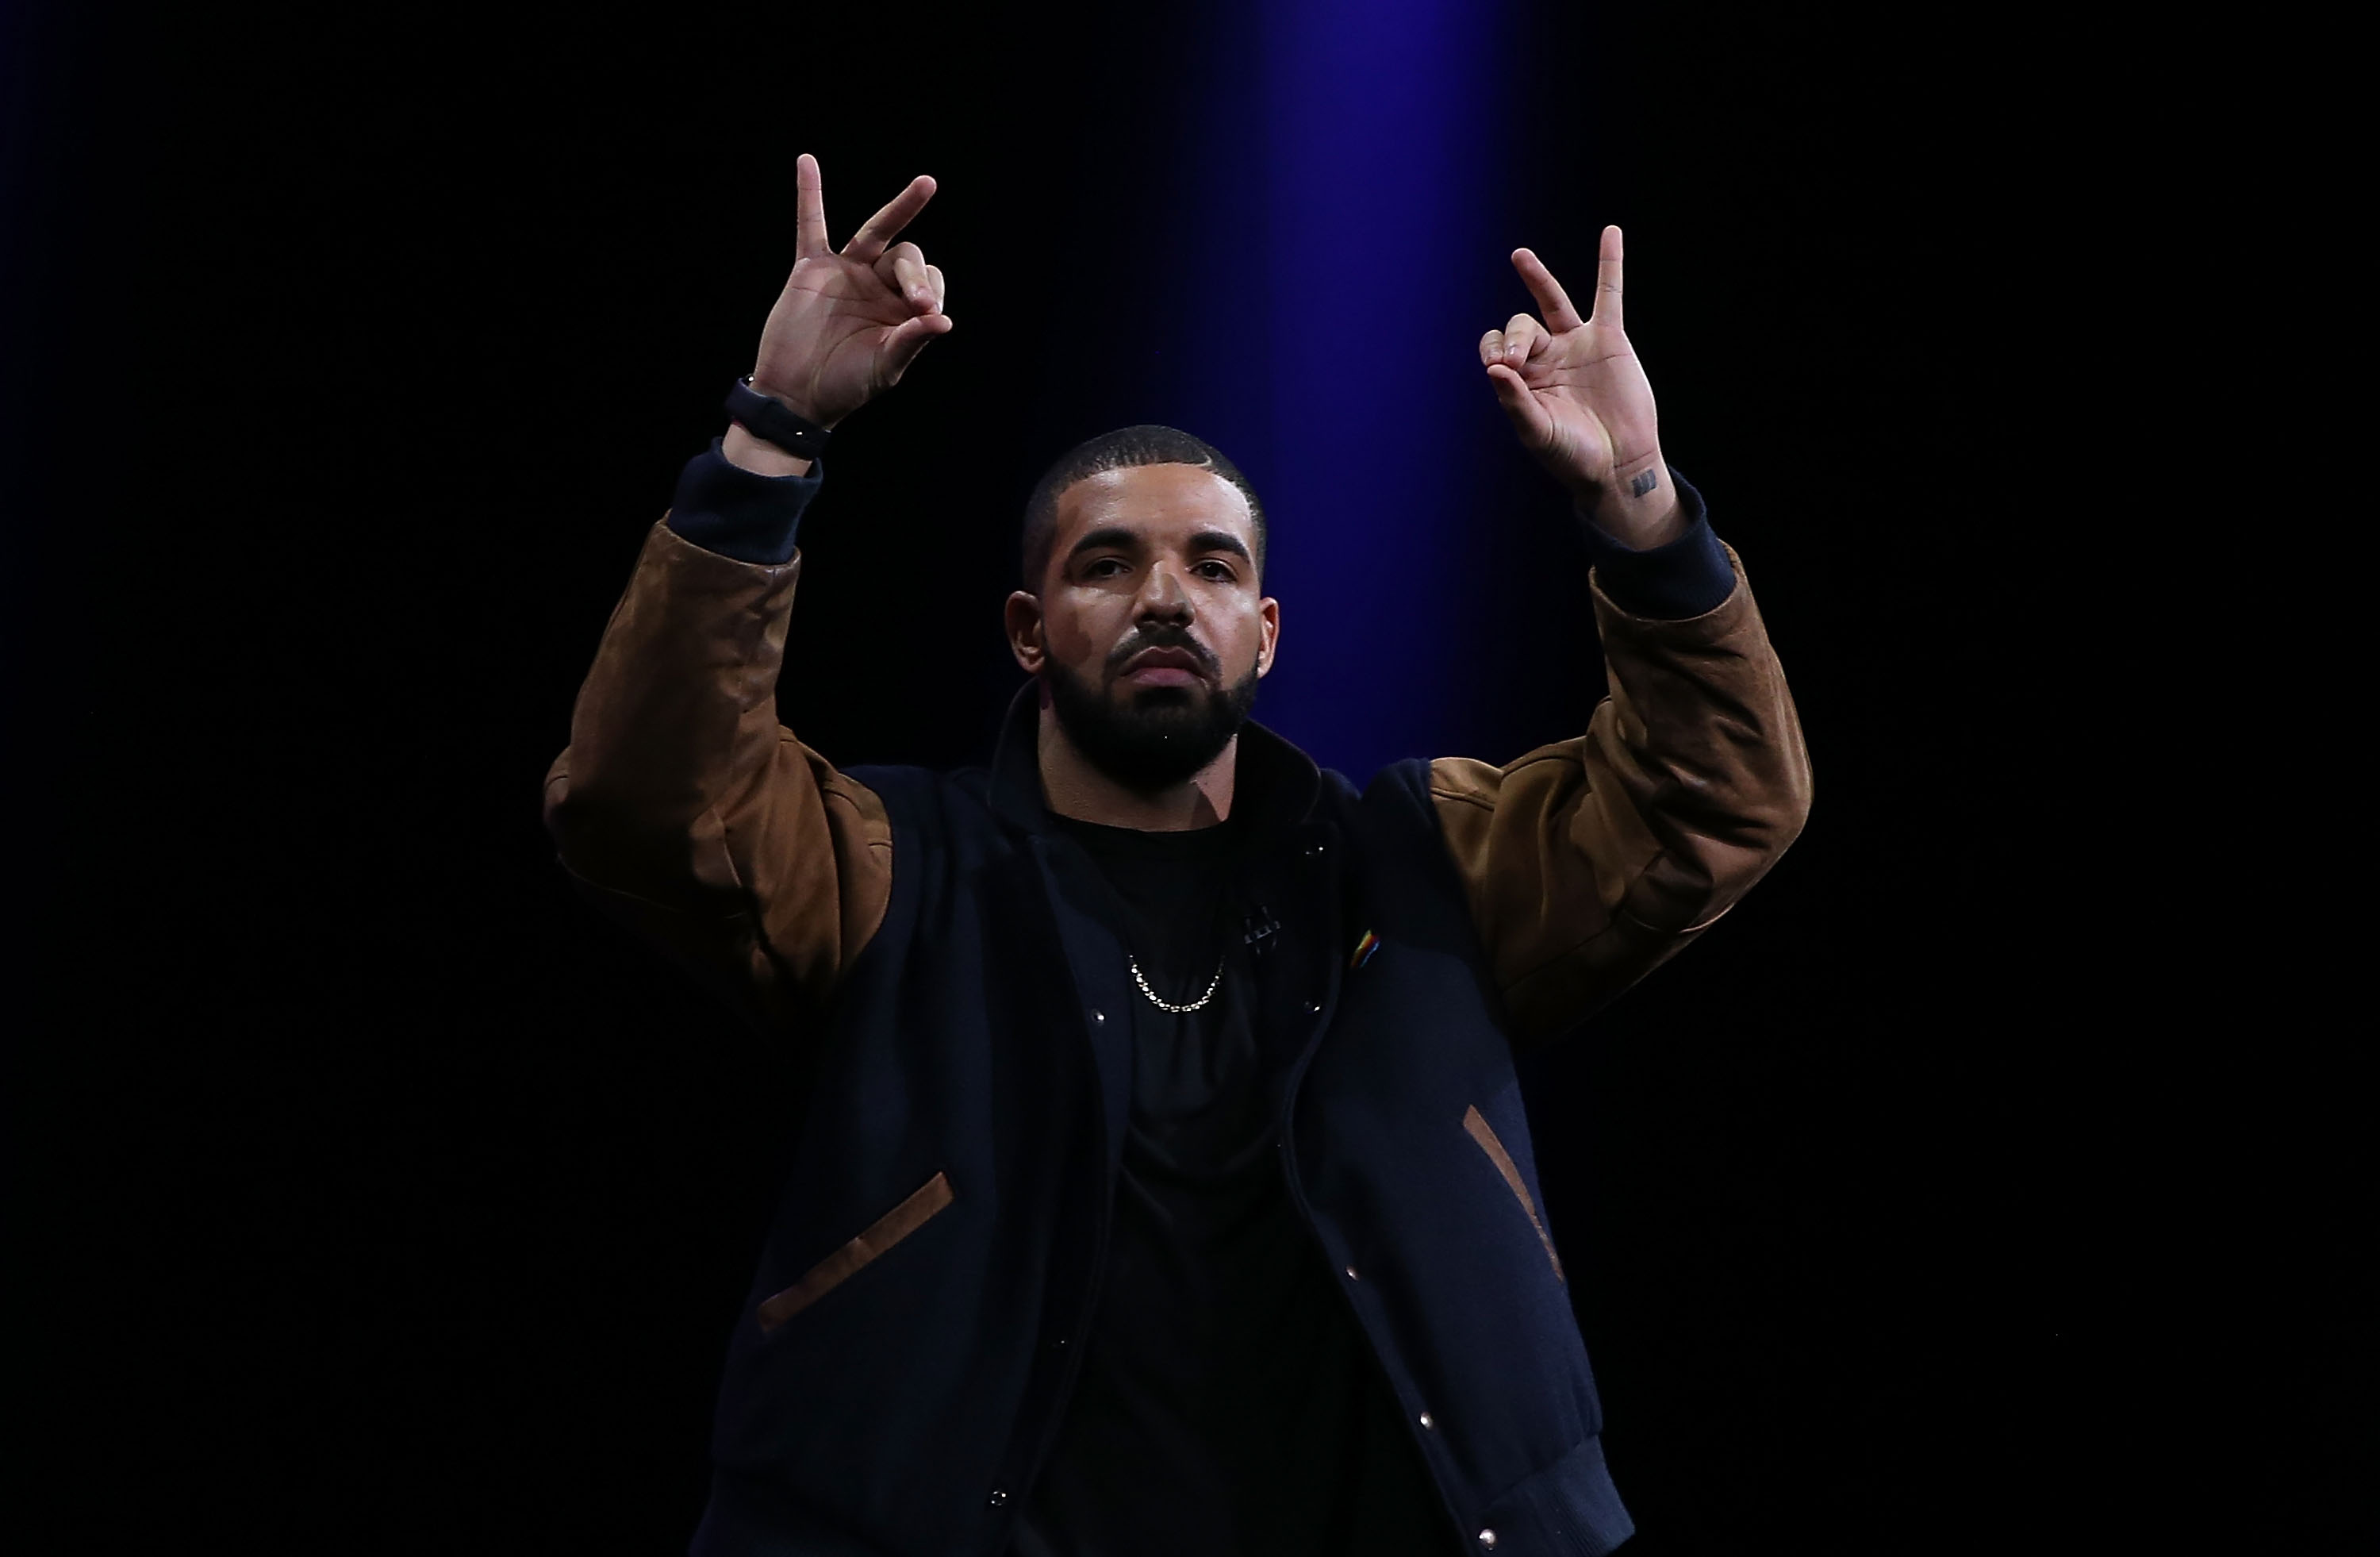 drake widescreen hd wallpaper 54566